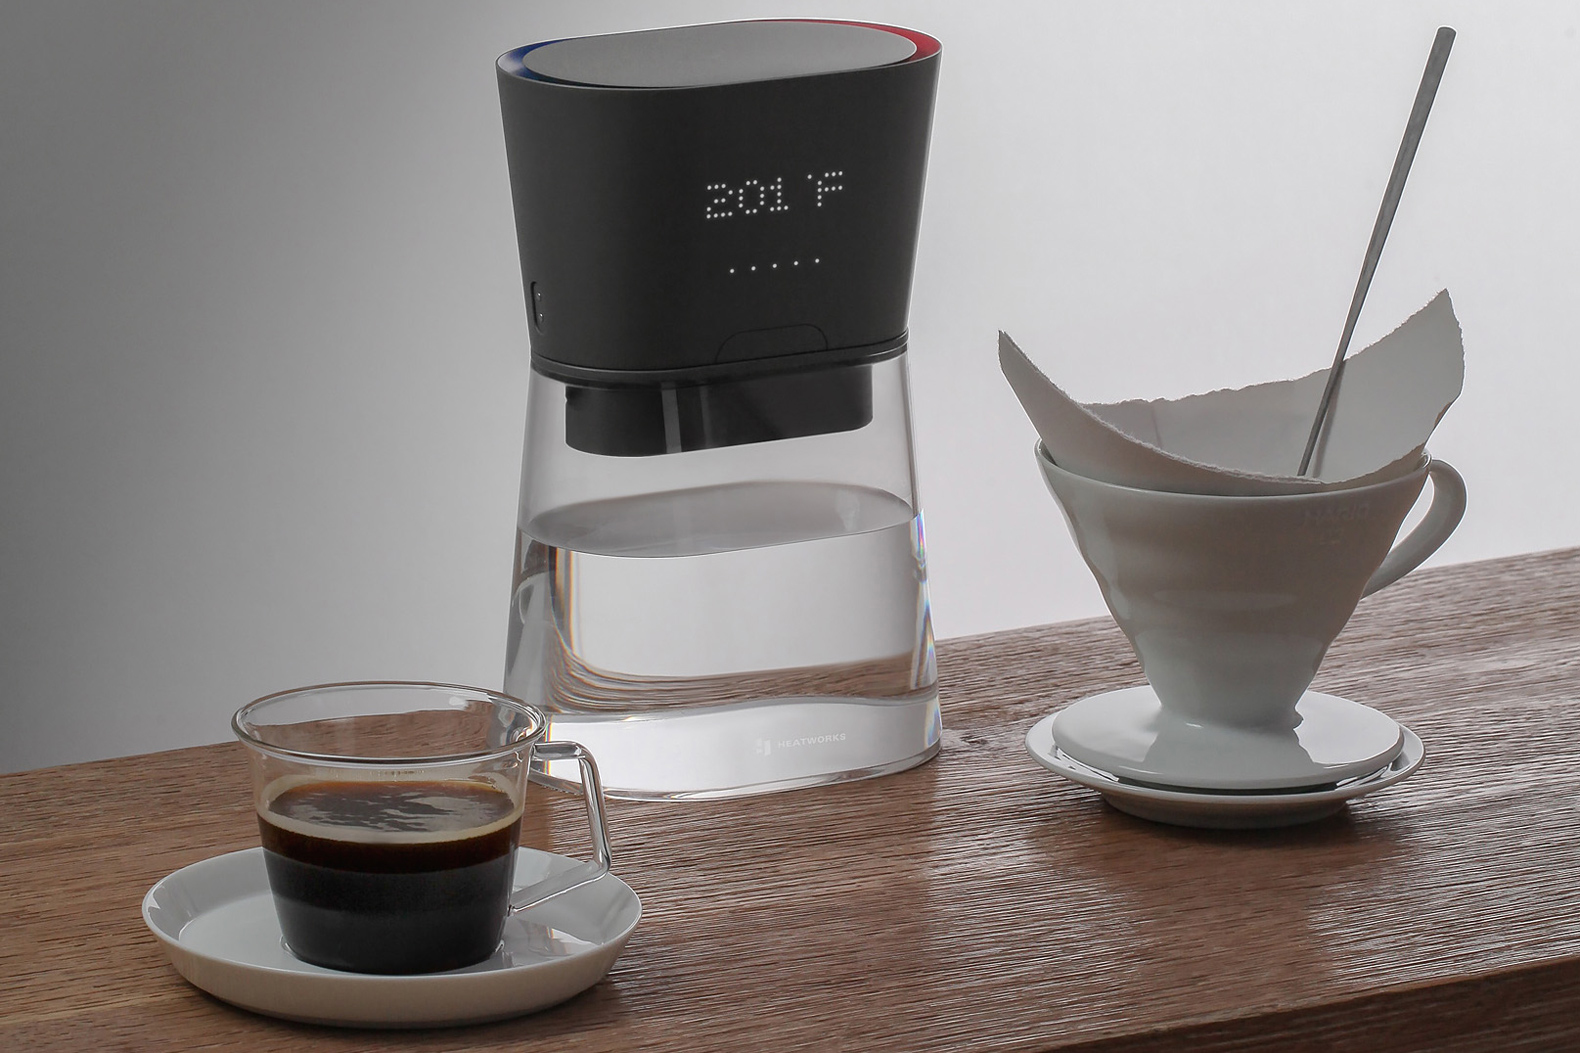 This on-the-go carafe heats or cools water instantaneously as you pour